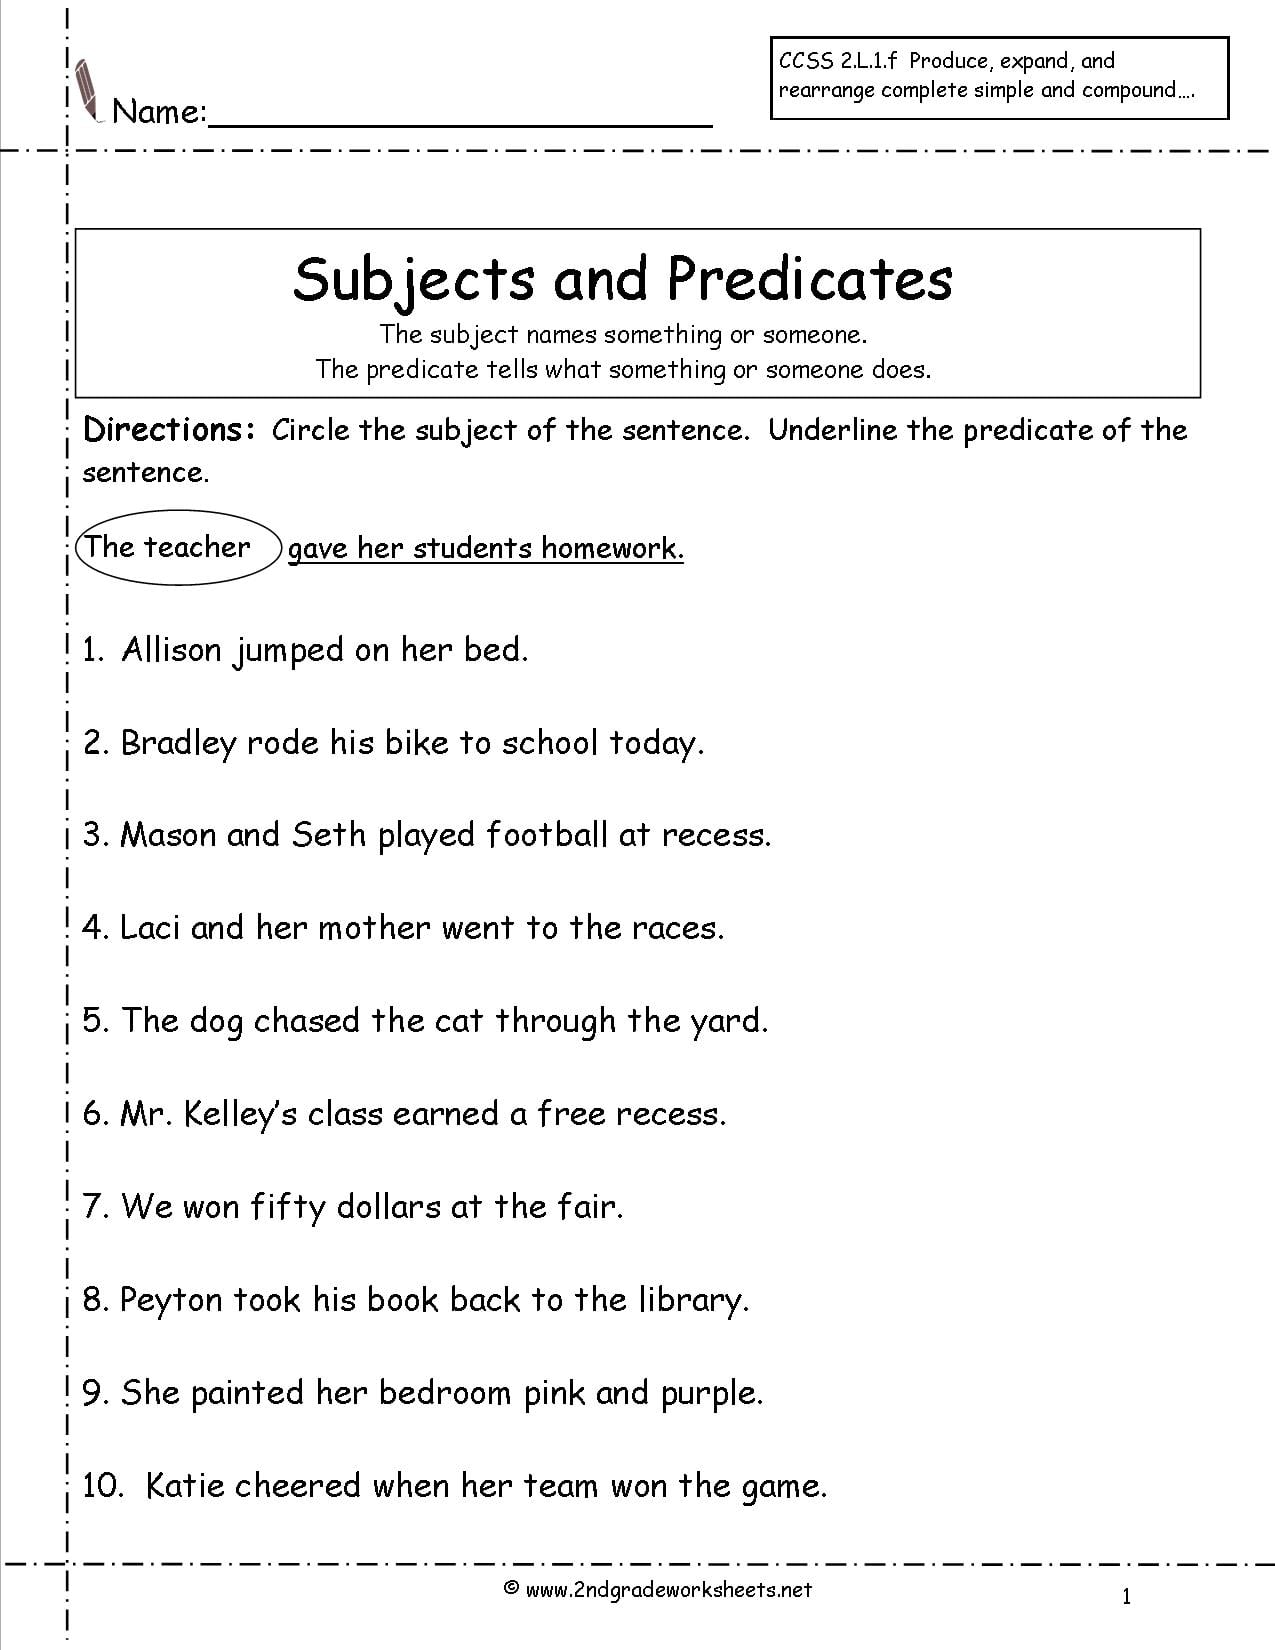 Identifying Subjects And Predicates Worksheets